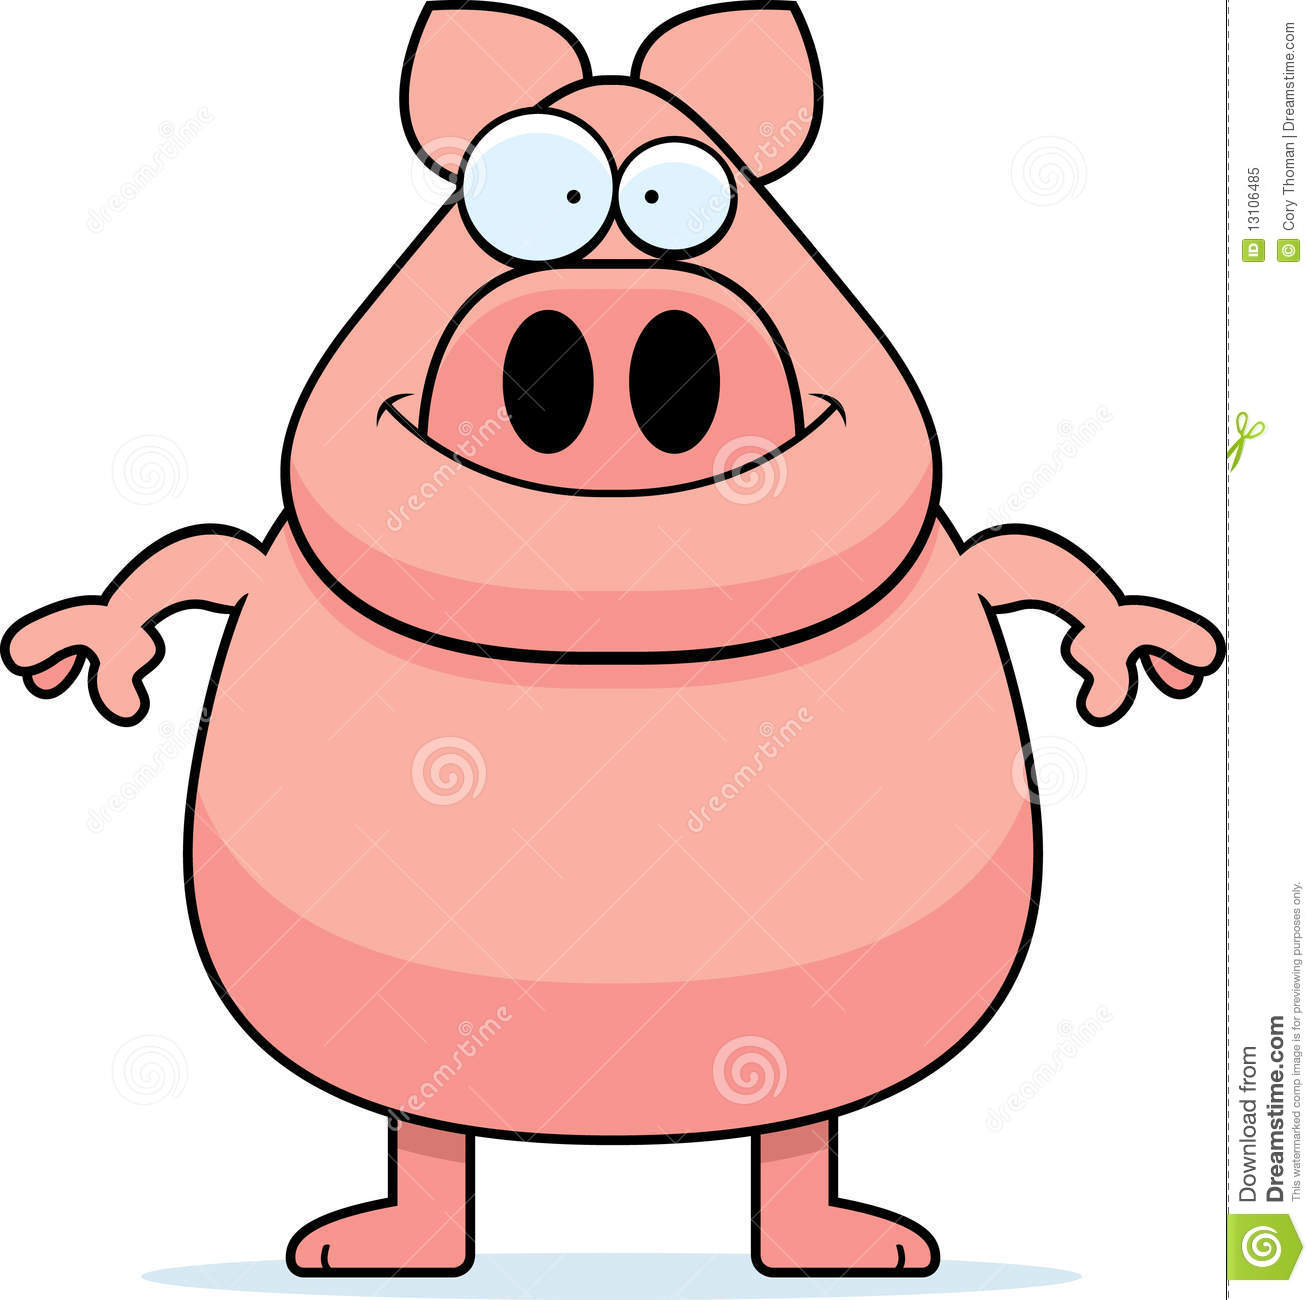 1316x1300 Animated Pig Clipart